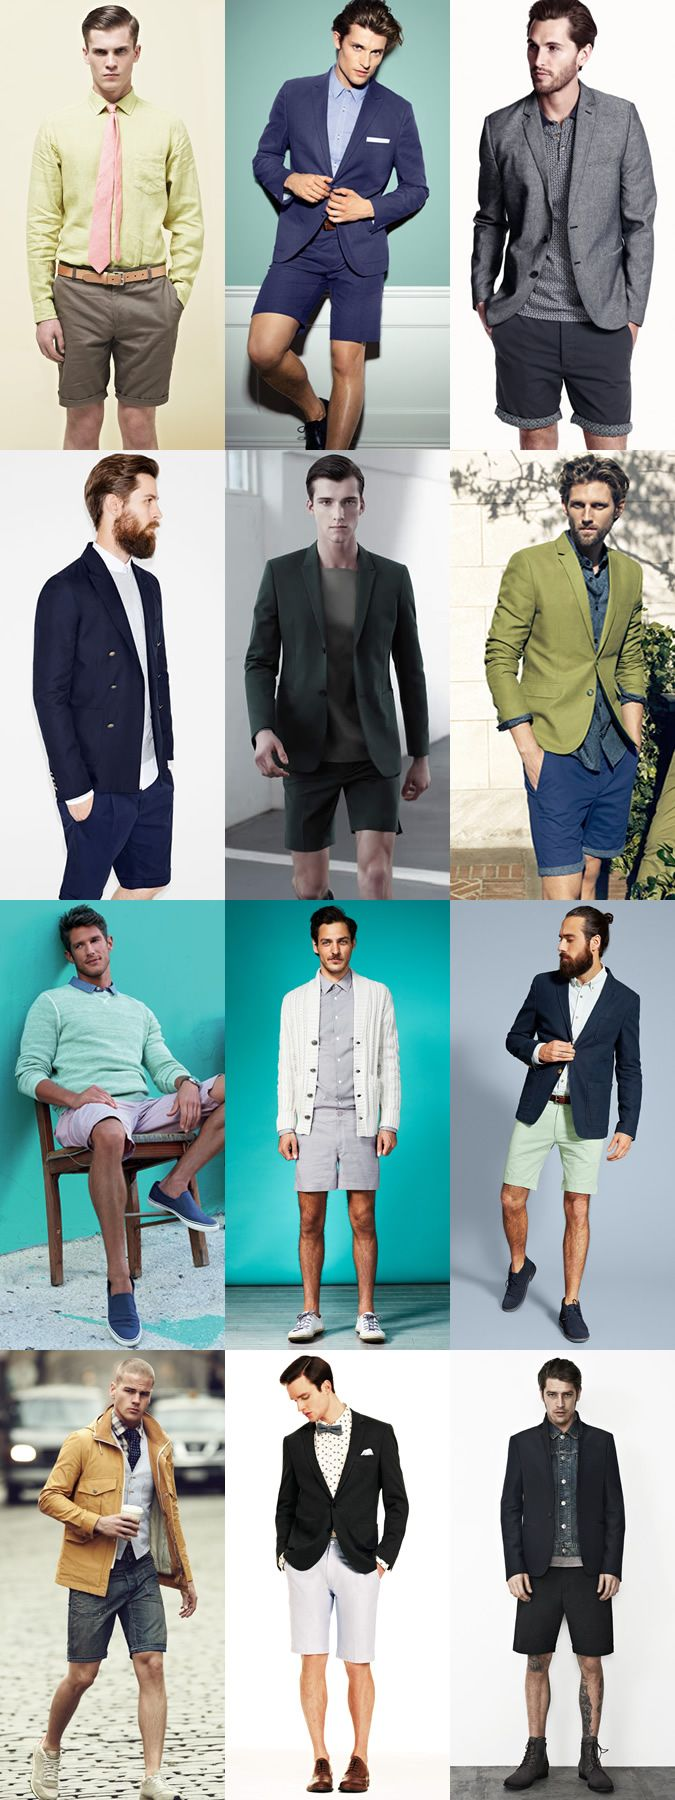 Dress code for smart casual smart casual dress code for men pictures - Mens Smart Casual Shorts Outfits